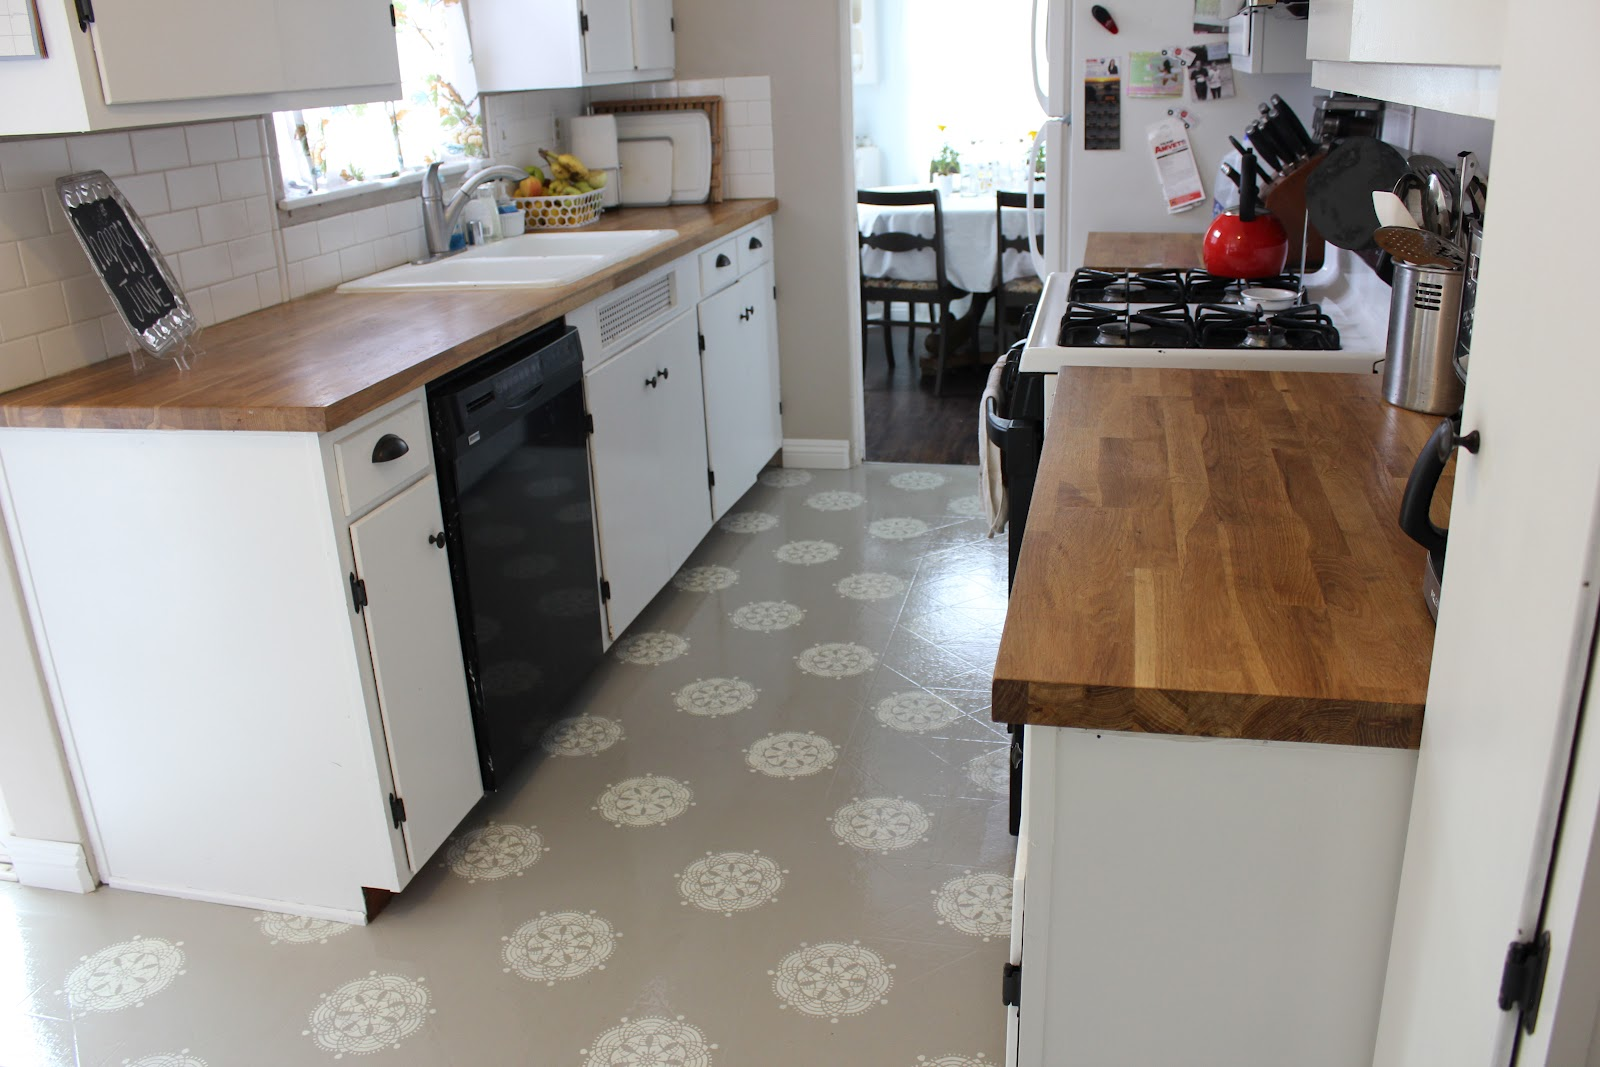 a warm conversation: work with what you got-painted kitchen floors